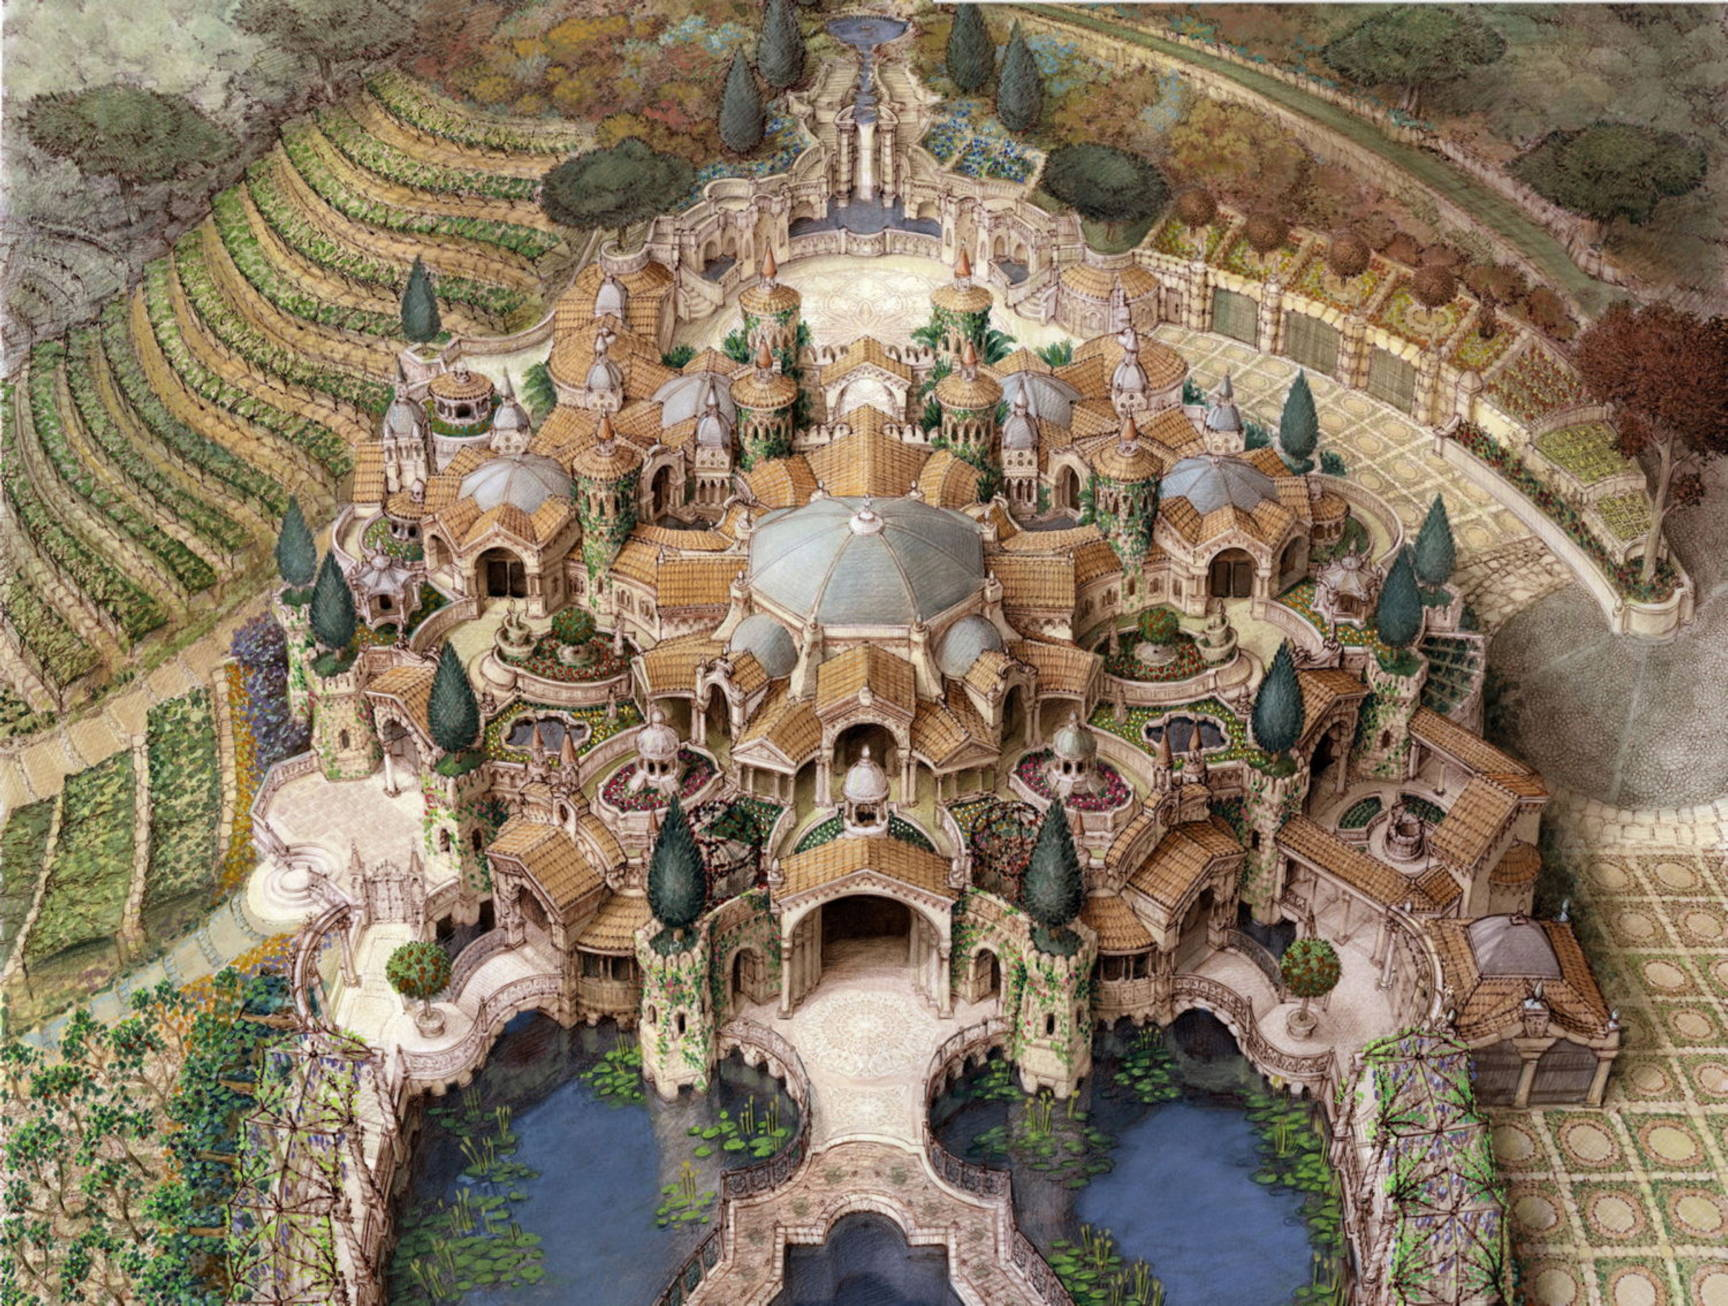 Architecture & architectural design by Kurt Wenner